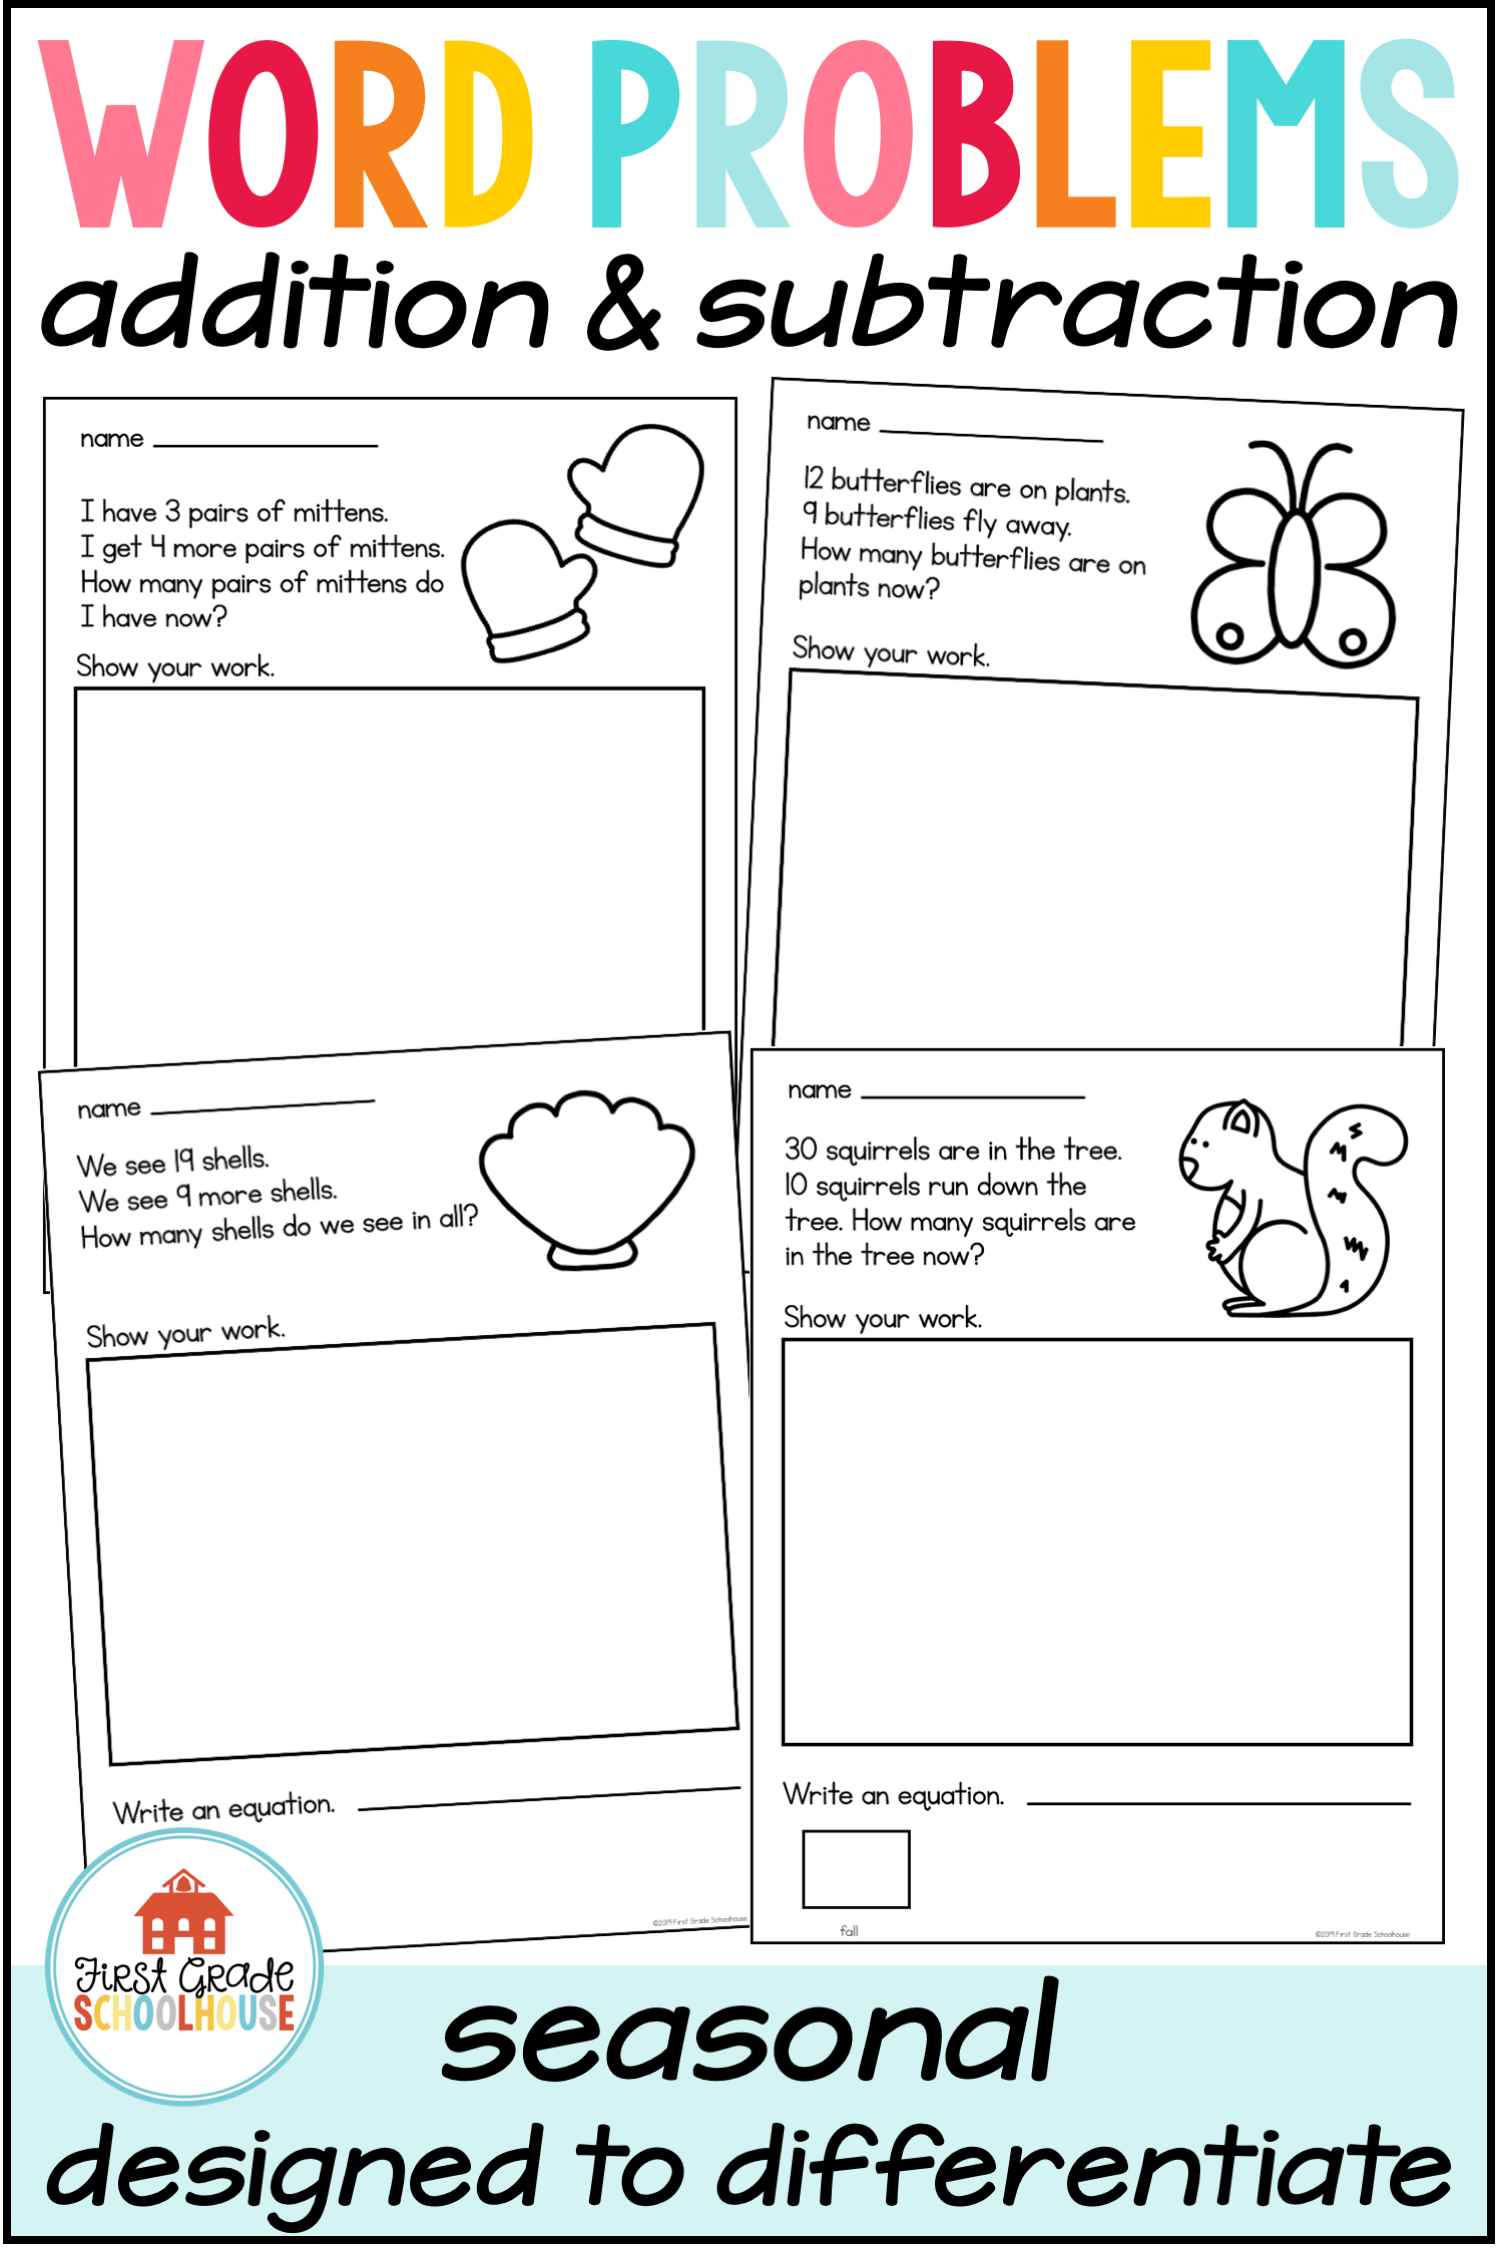 Word Problems Addition and Subtraction   Seasons   Preschool math worksheets [ 2249 x 1499 Pixel ]